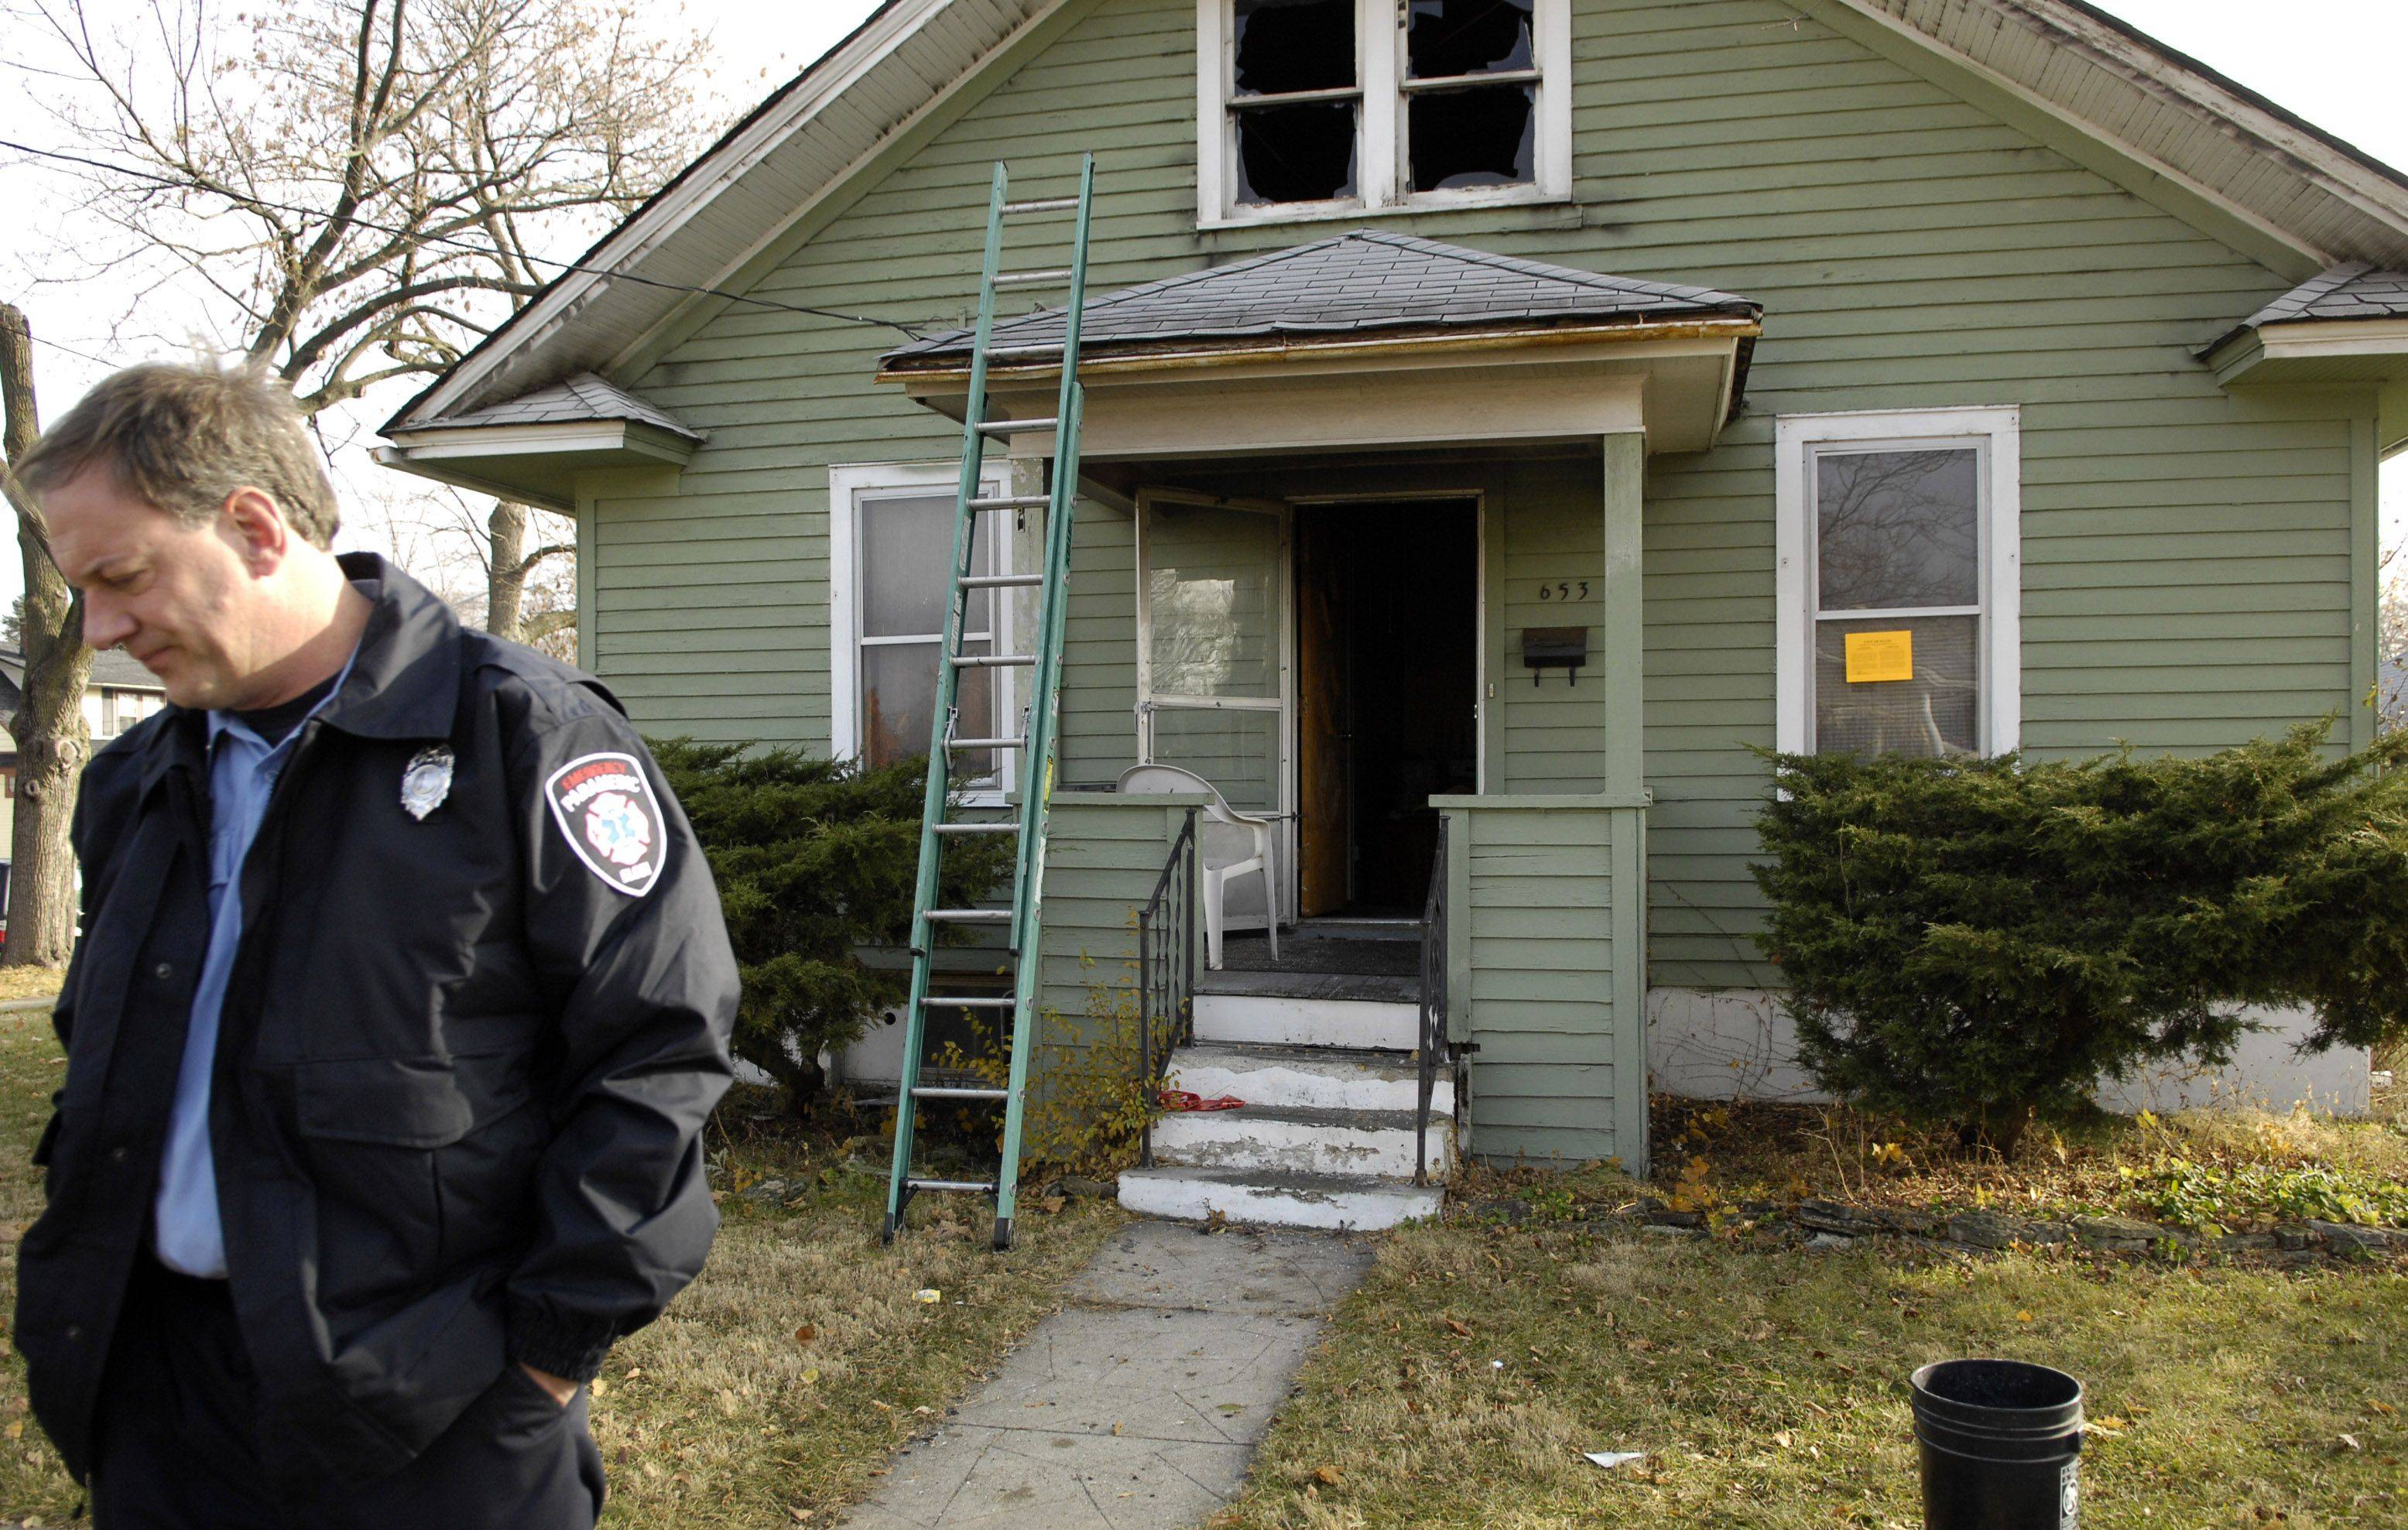 Elgin Fire Lt. Robert Bedard leaves after stopping by to check out the scene of a house fire that claimed the life of an elderly woman at 653 Prospect Street in Elgin overnight.